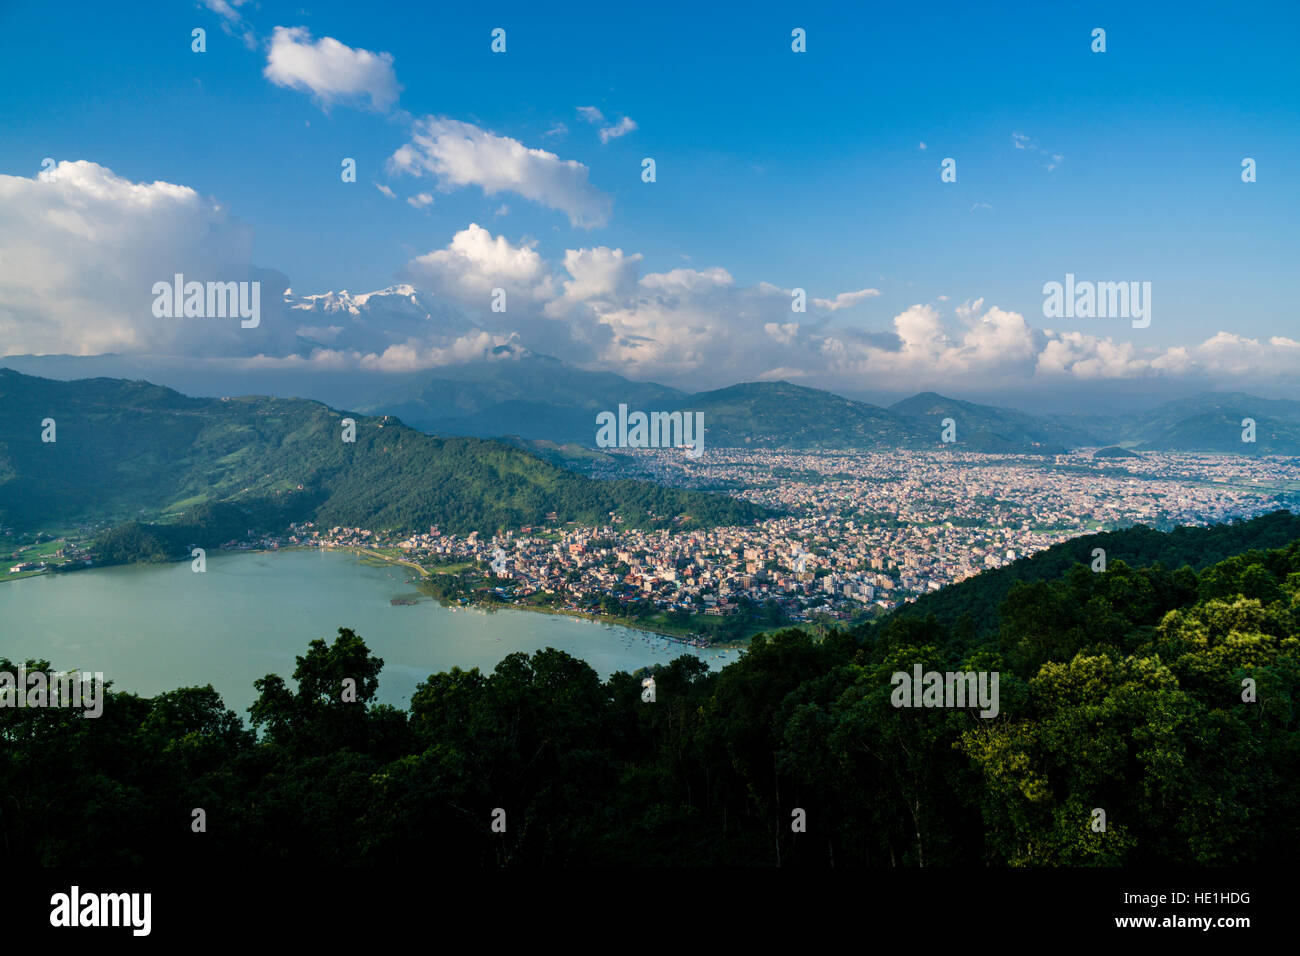 Aerial view on the city and the Phewa Lake - Stock Image